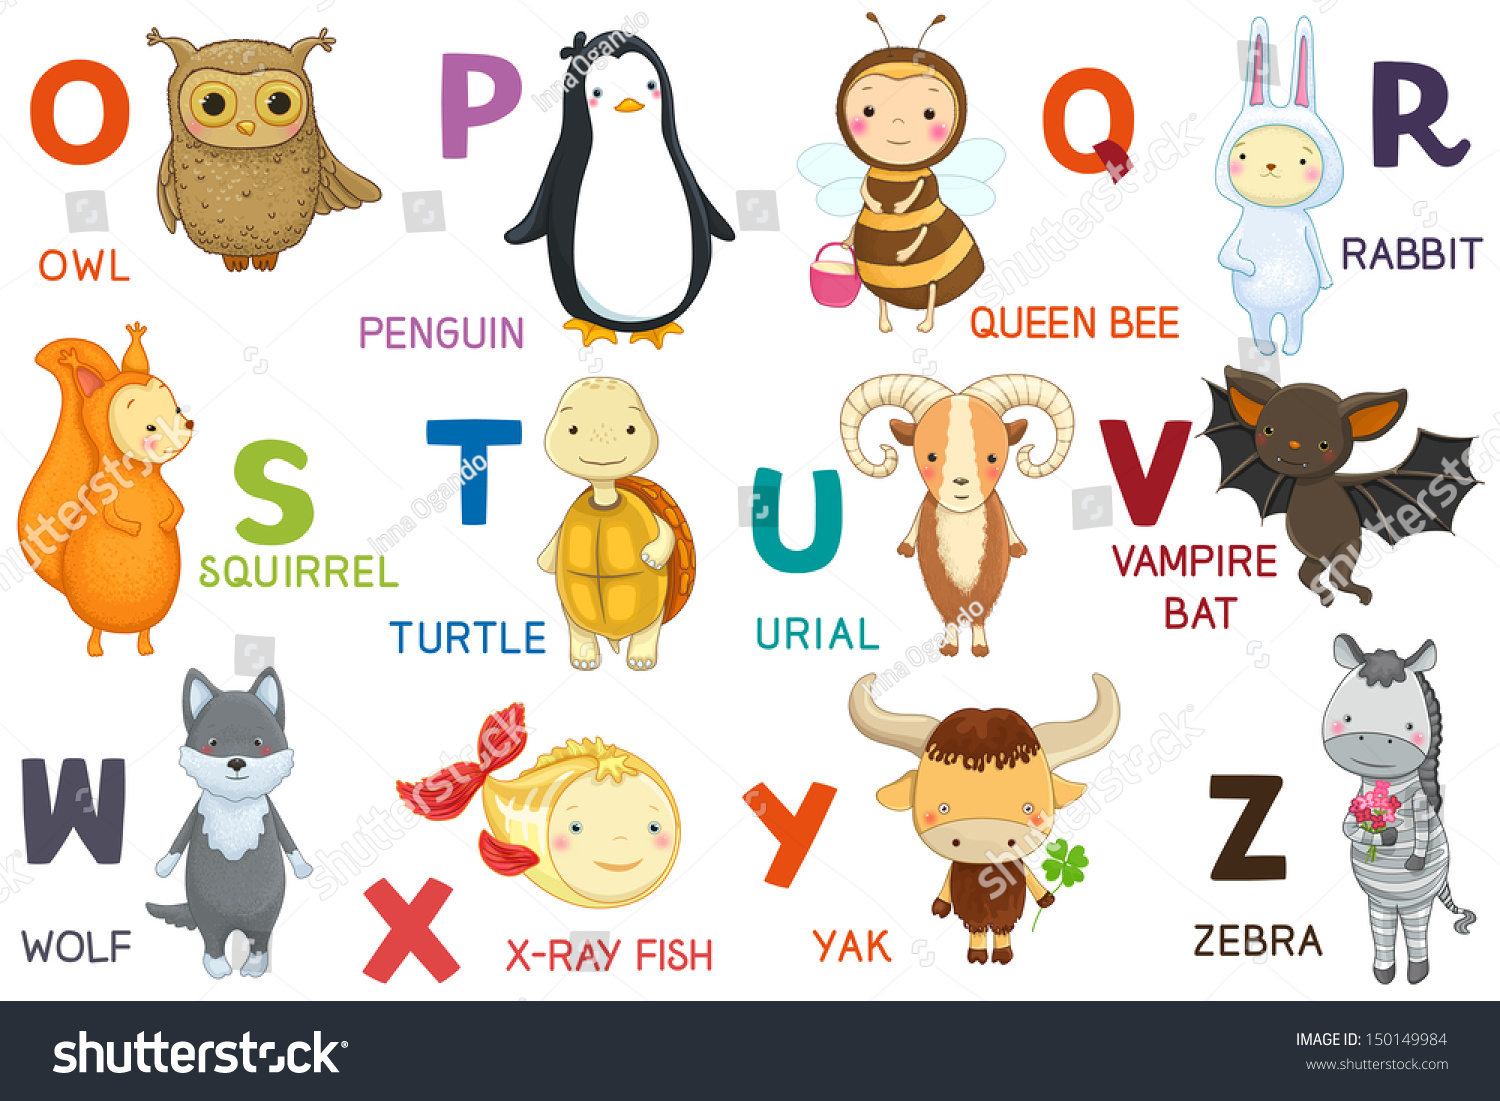 Animals abc letter oz cartoon characters stock vector for Animals with the letter o in their name